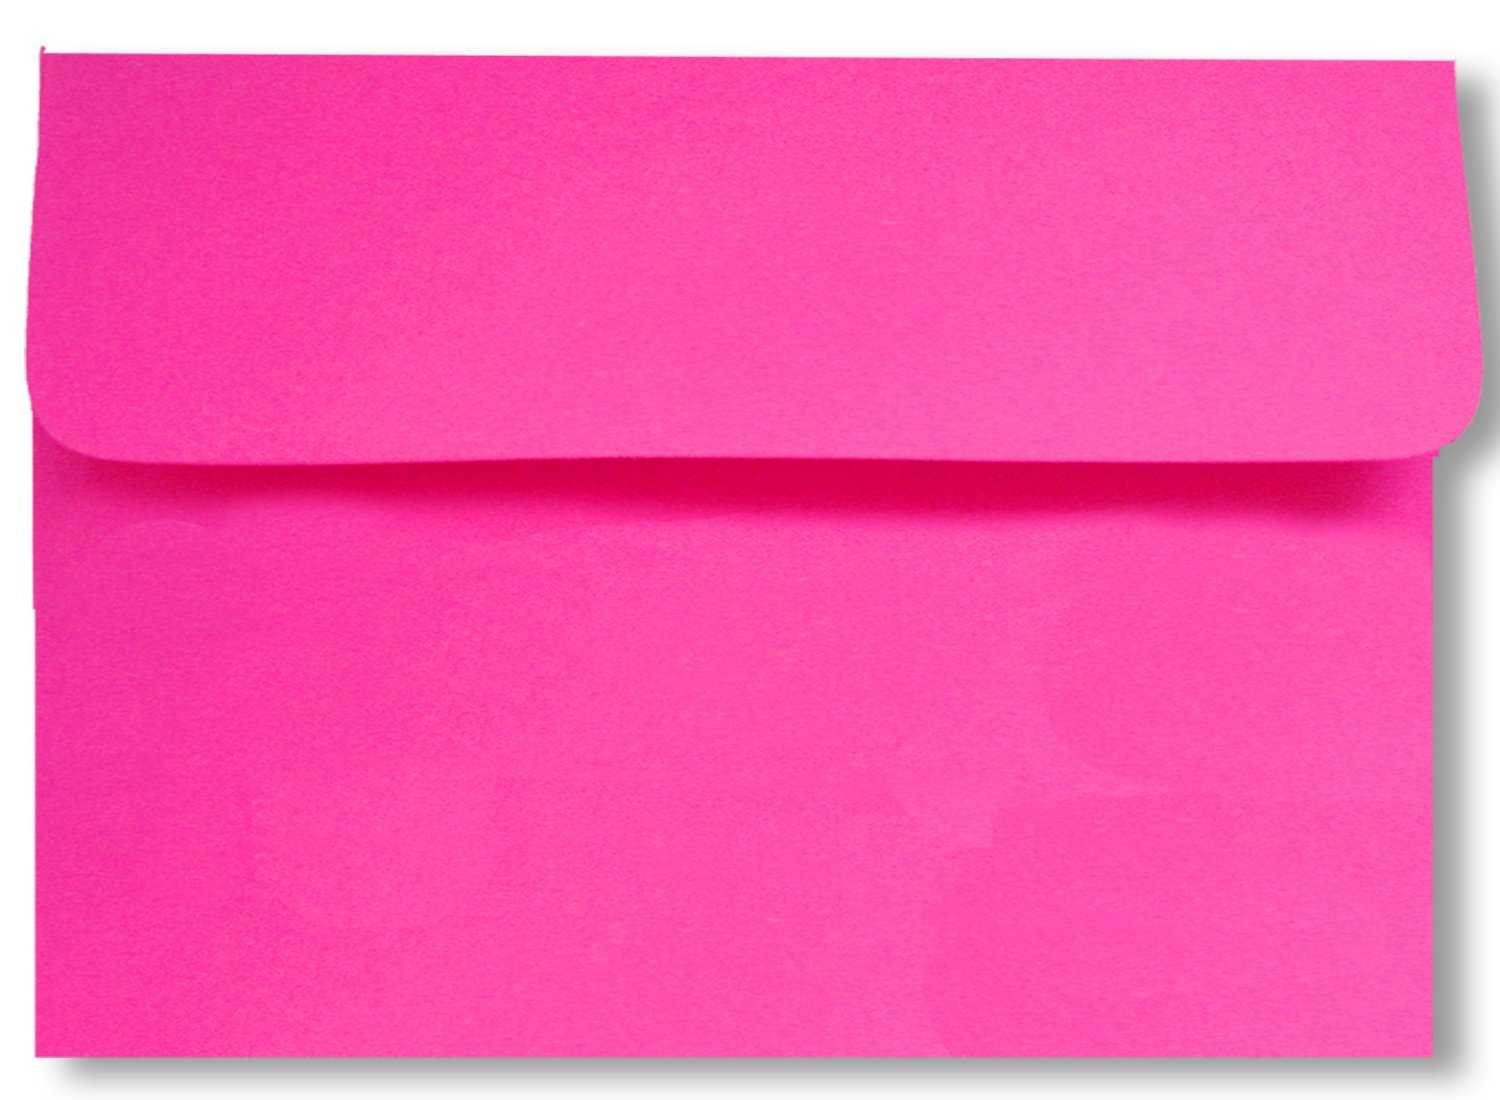 Fireball Fuchsia 25 Pack A6 Envelopes for 4 x 6 Invitations from The Envelope Gallery